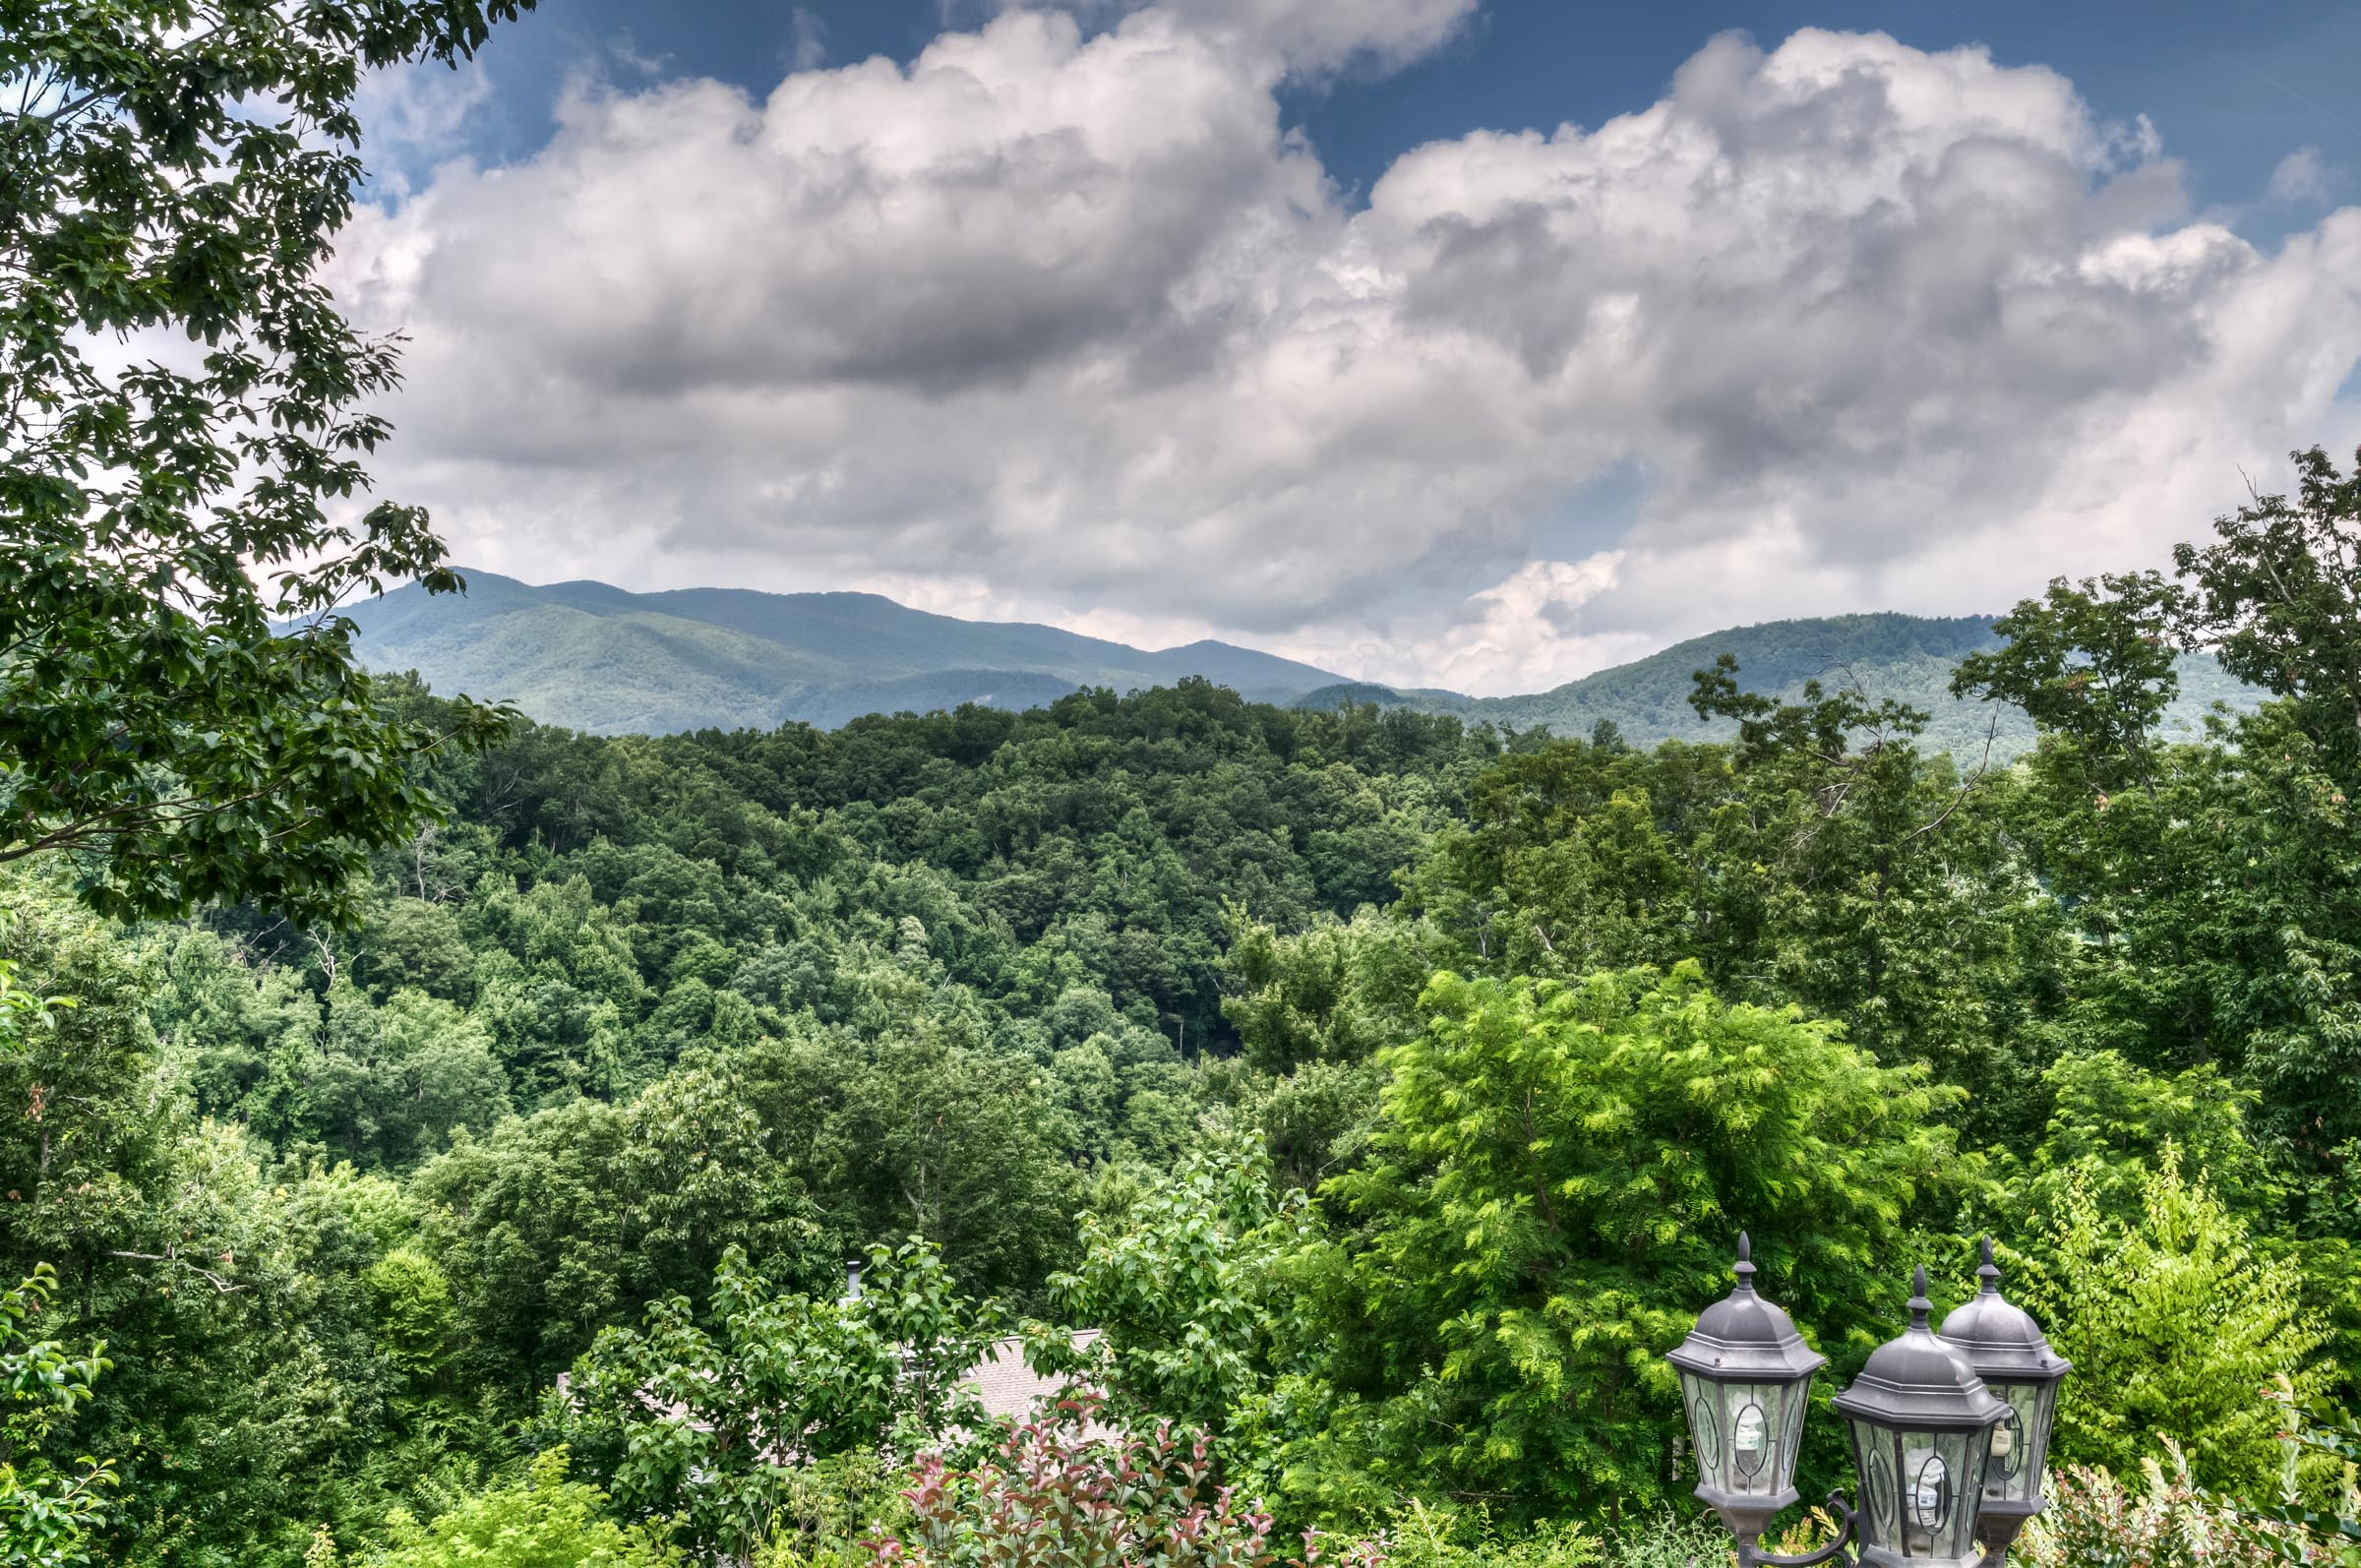 North-facing View from Fairview, NC